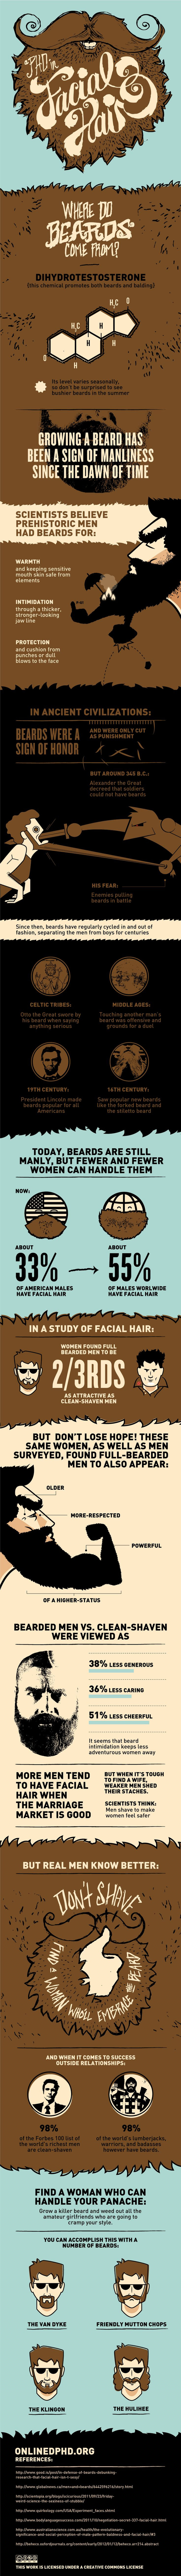 The Amazing History of Beards